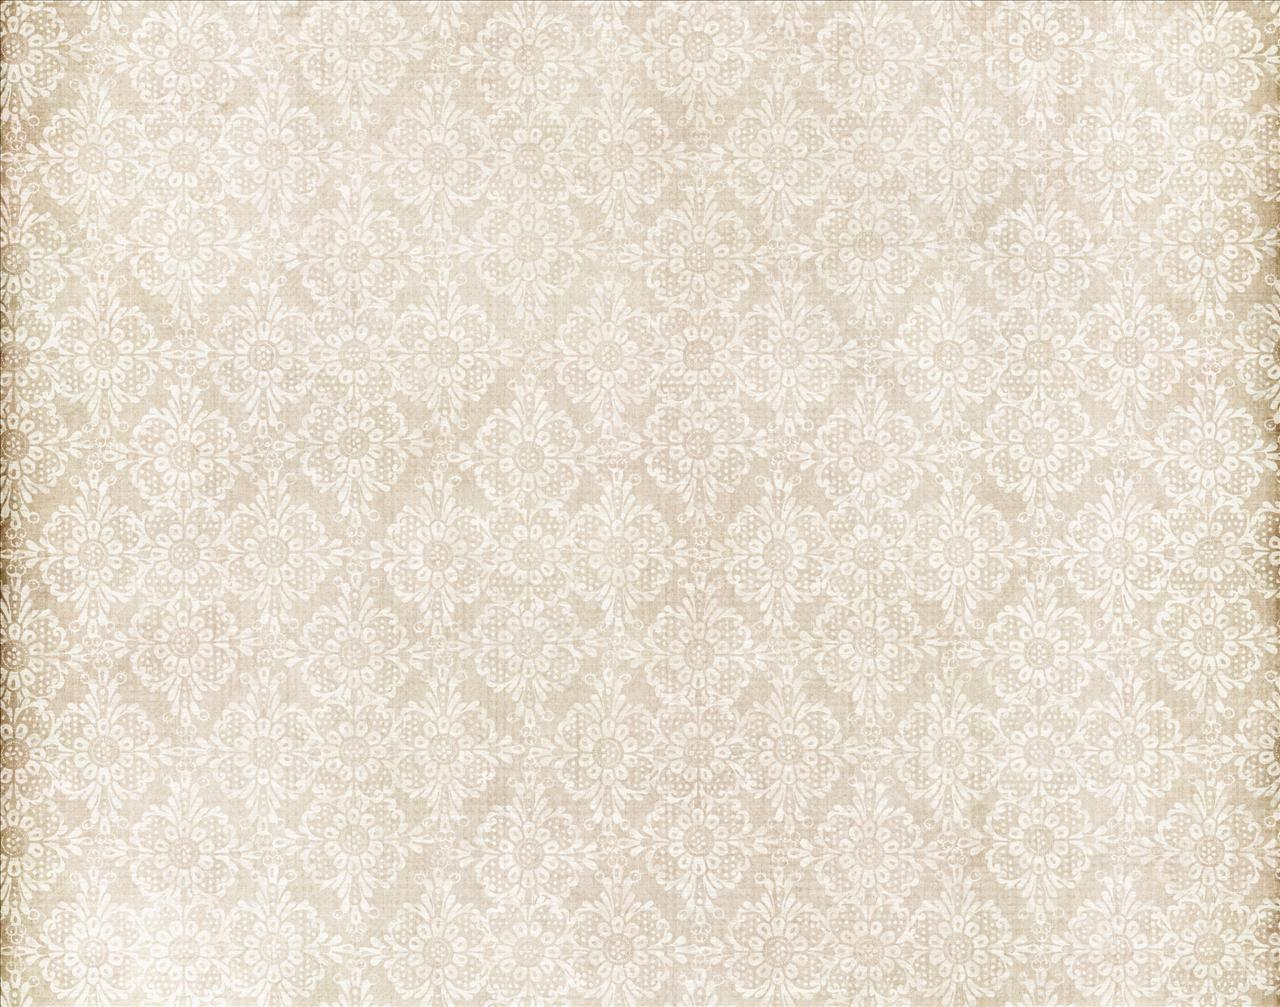 Ivory Lace Backgrounds